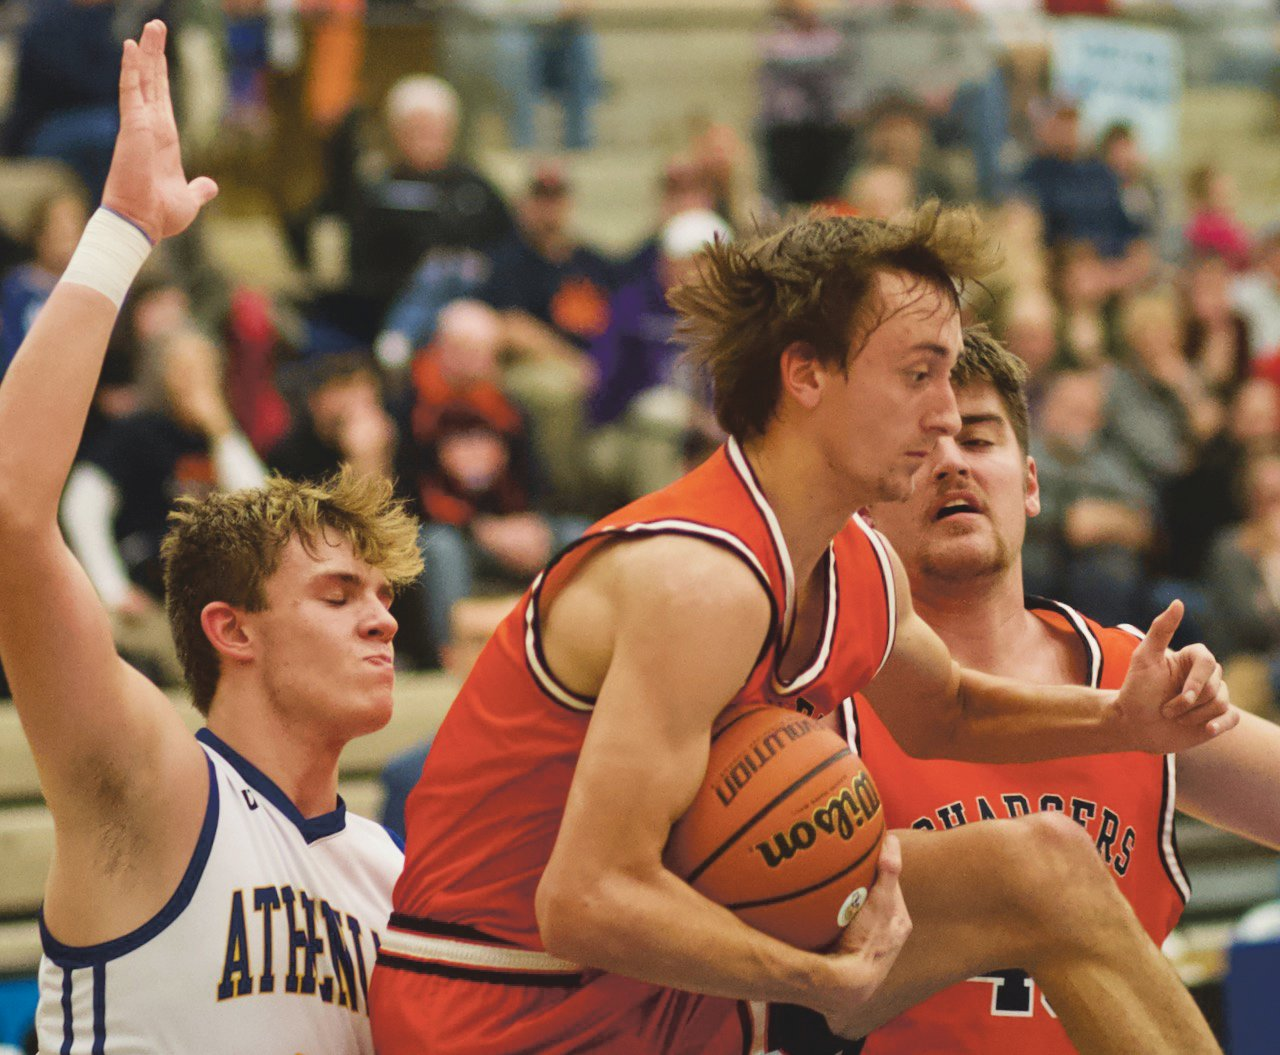 Crawfordsville's Nate Schroeter defends North Montgomery's Kade Kobel in a game earlier this season.